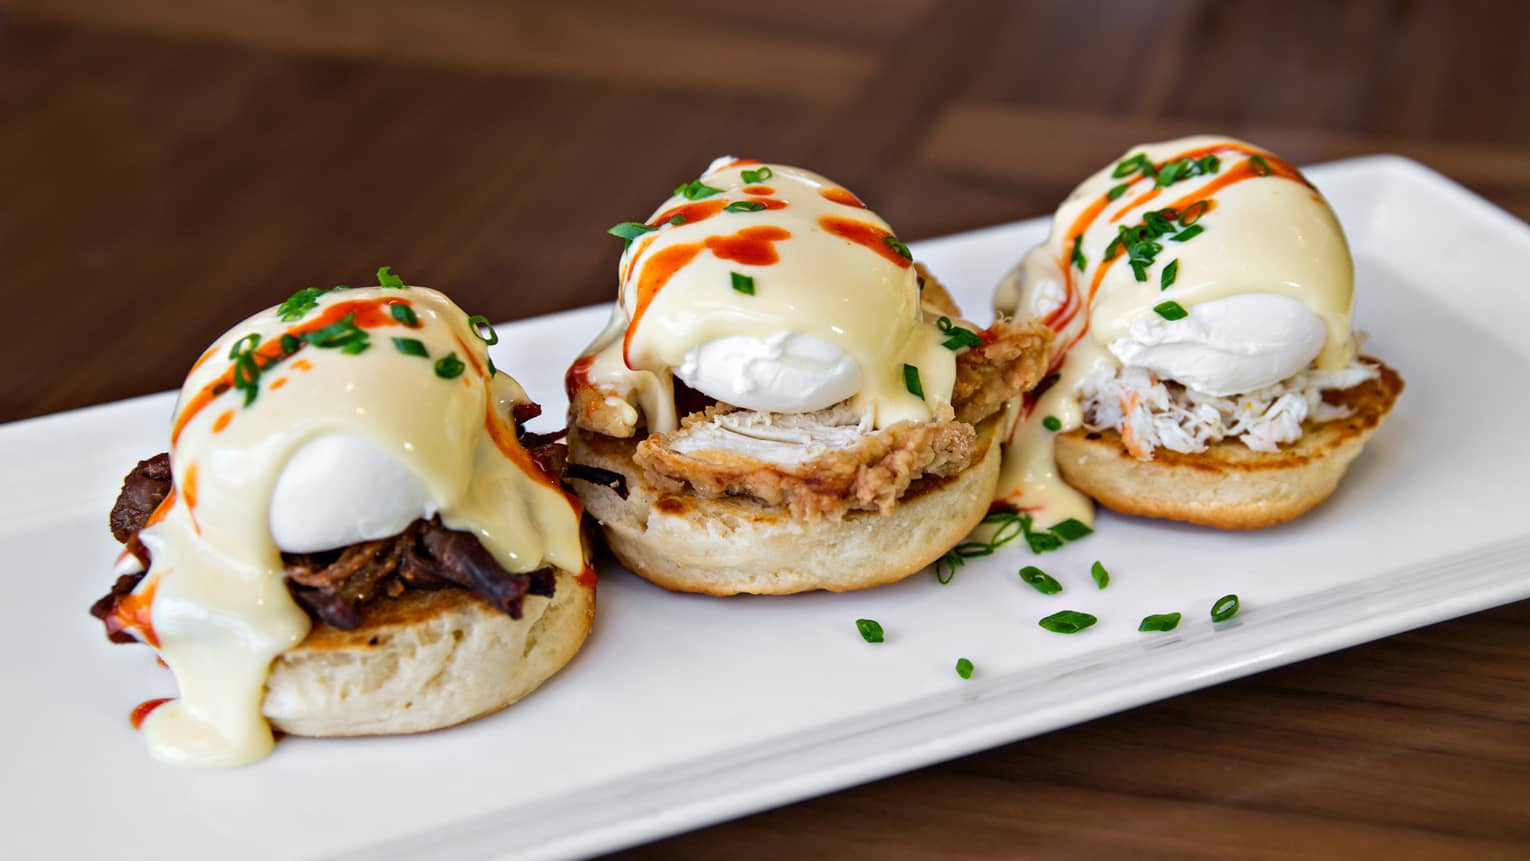 Law eggs Benedict, three English muffins topped with poached eggs, fried chicken, brisket, crab and hollandaise sauce